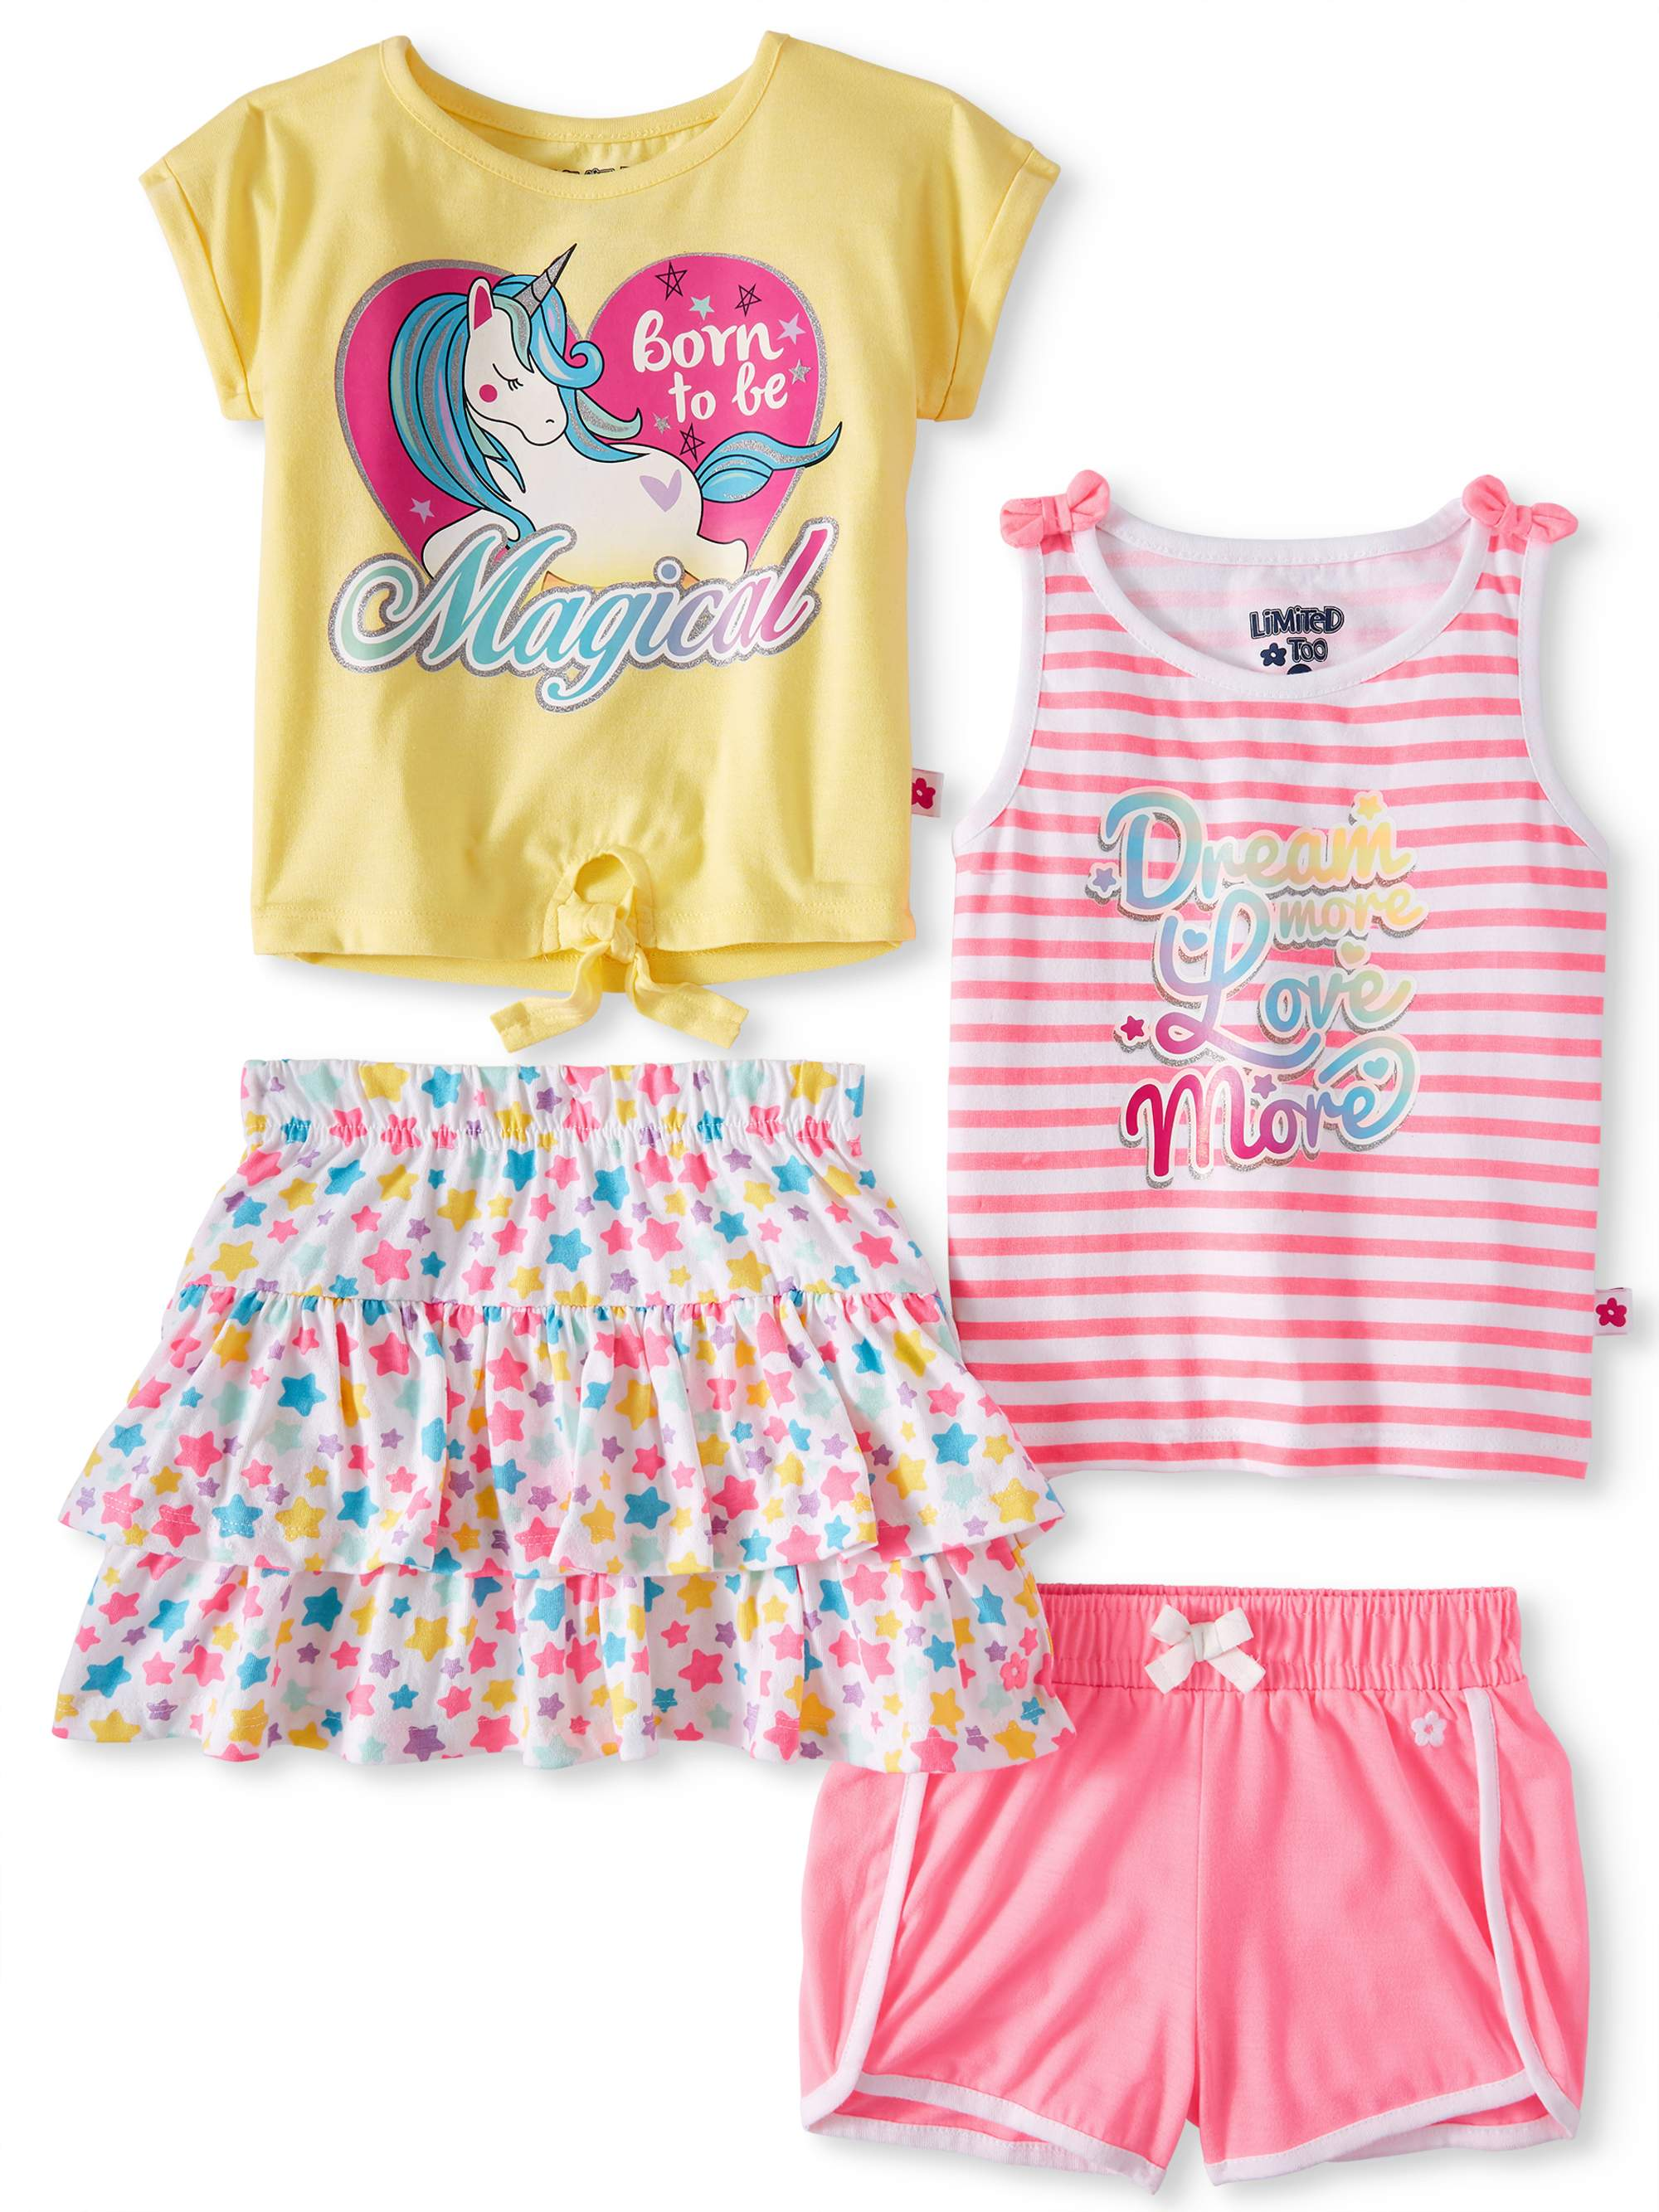 Limited Too Spring Collection for Toddler Girls   Shop new spring styles!